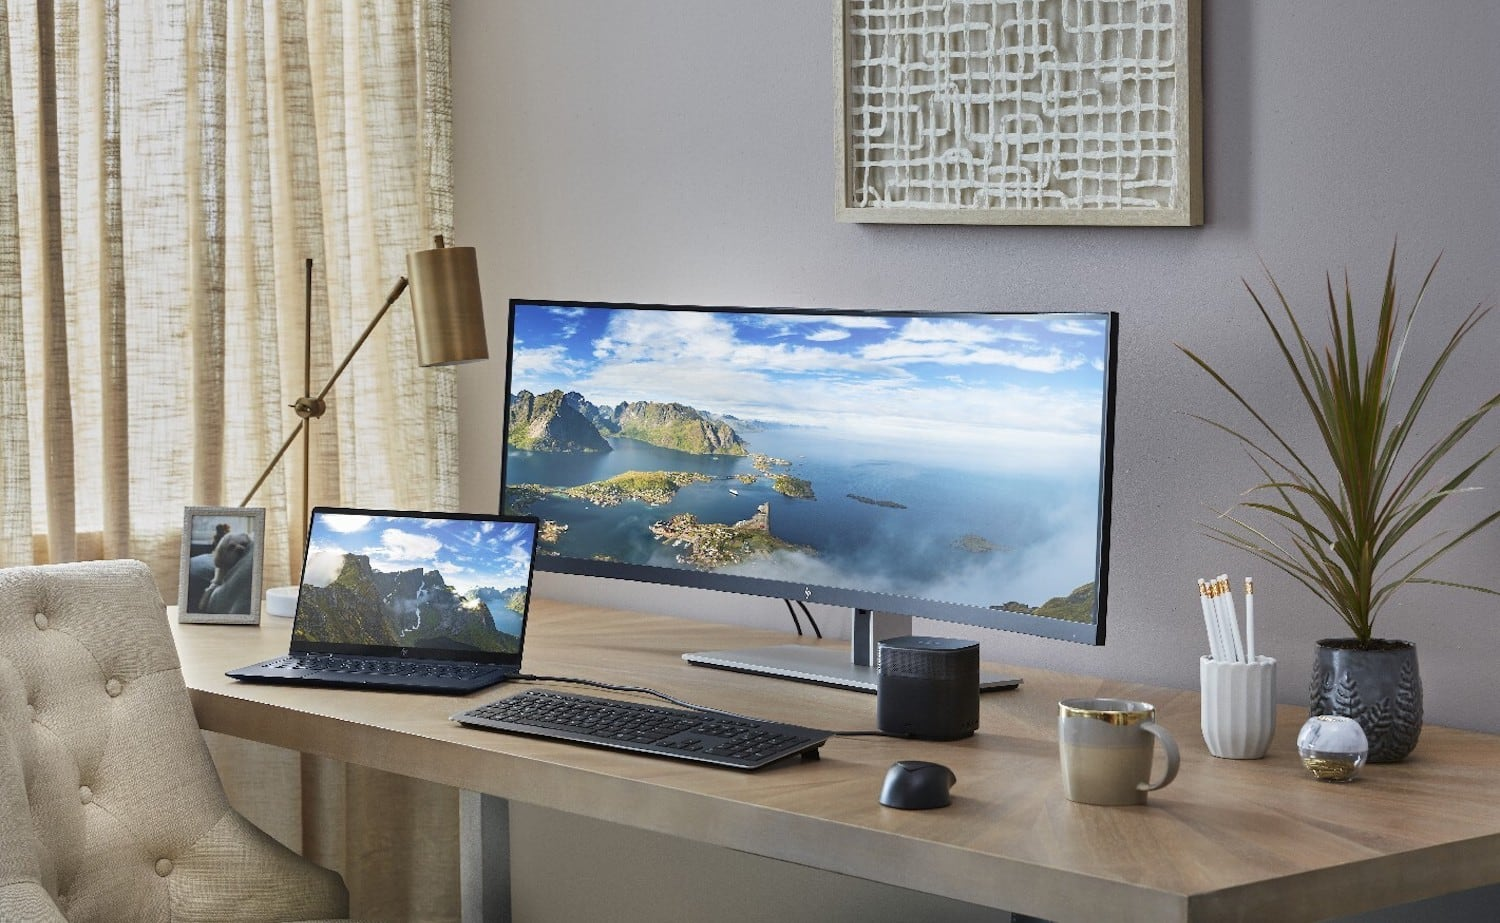 HP S430C Curved Ultrawide Monitor 43.4″ Display lets you simultaneously control two computers